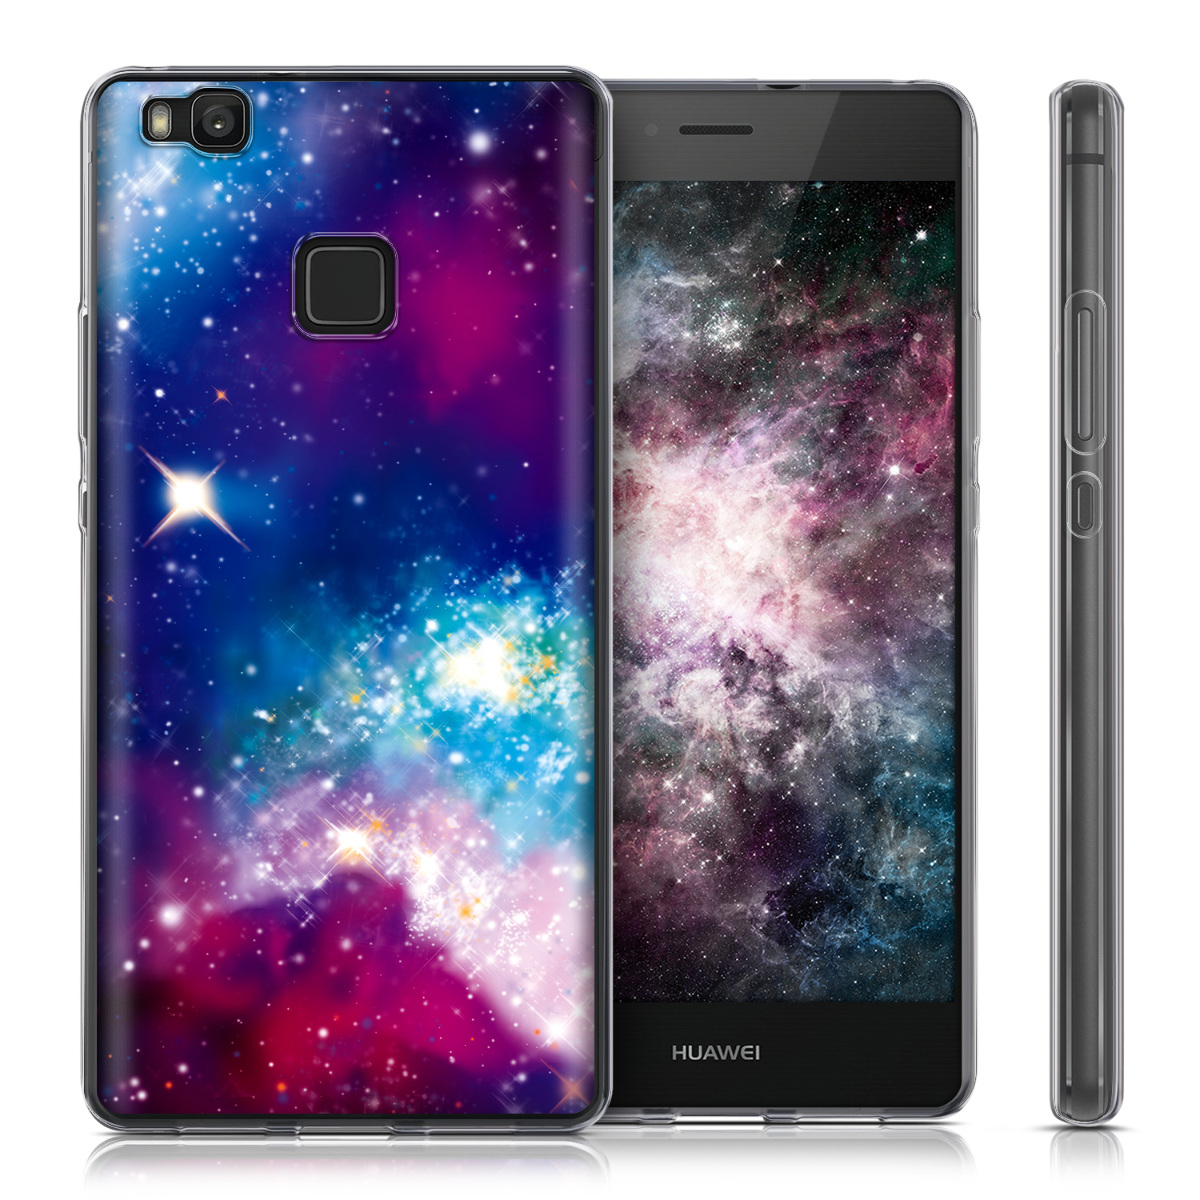 kwmobile cover for huawei p9 lite case cover mobile phone. Black Bedroom Furniture Sets. Home Design Ideas